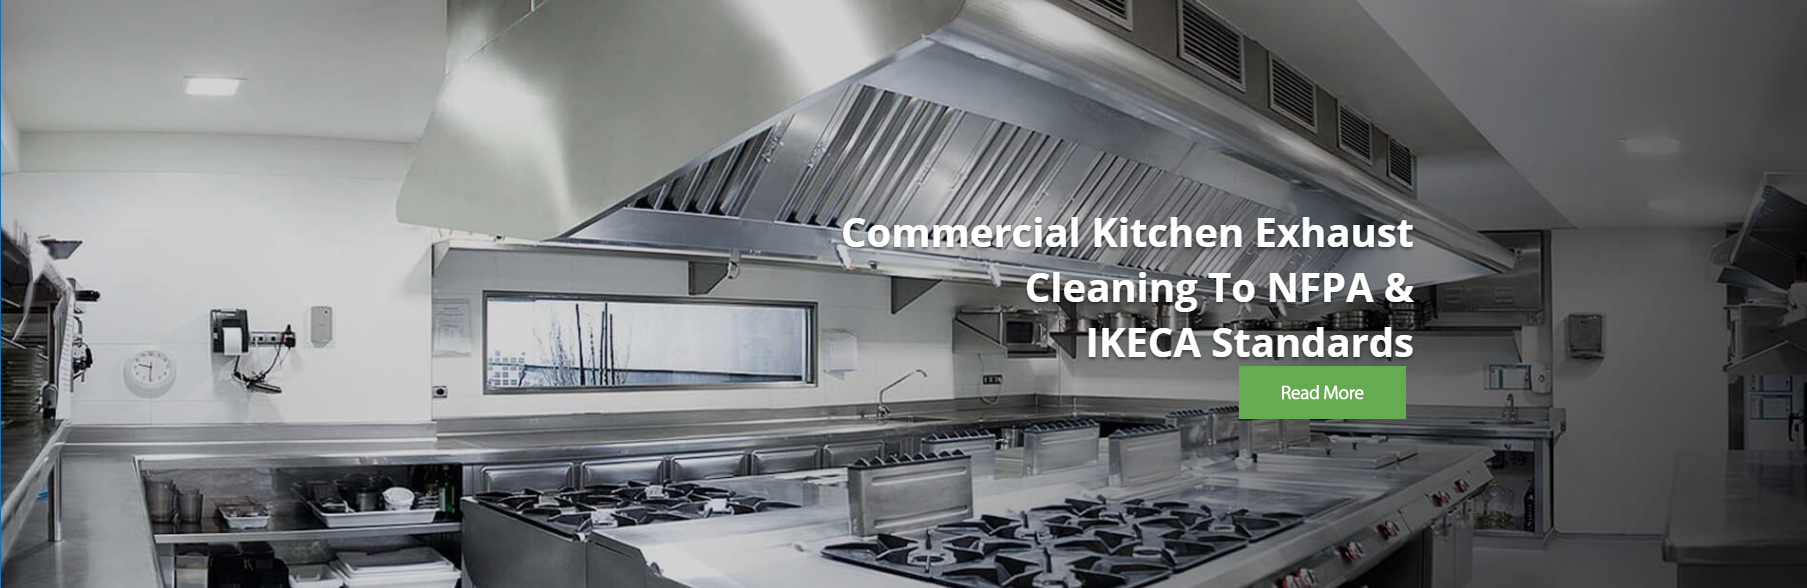 commercial kitchen exhaust cleaning to NFPA & IKECA standards